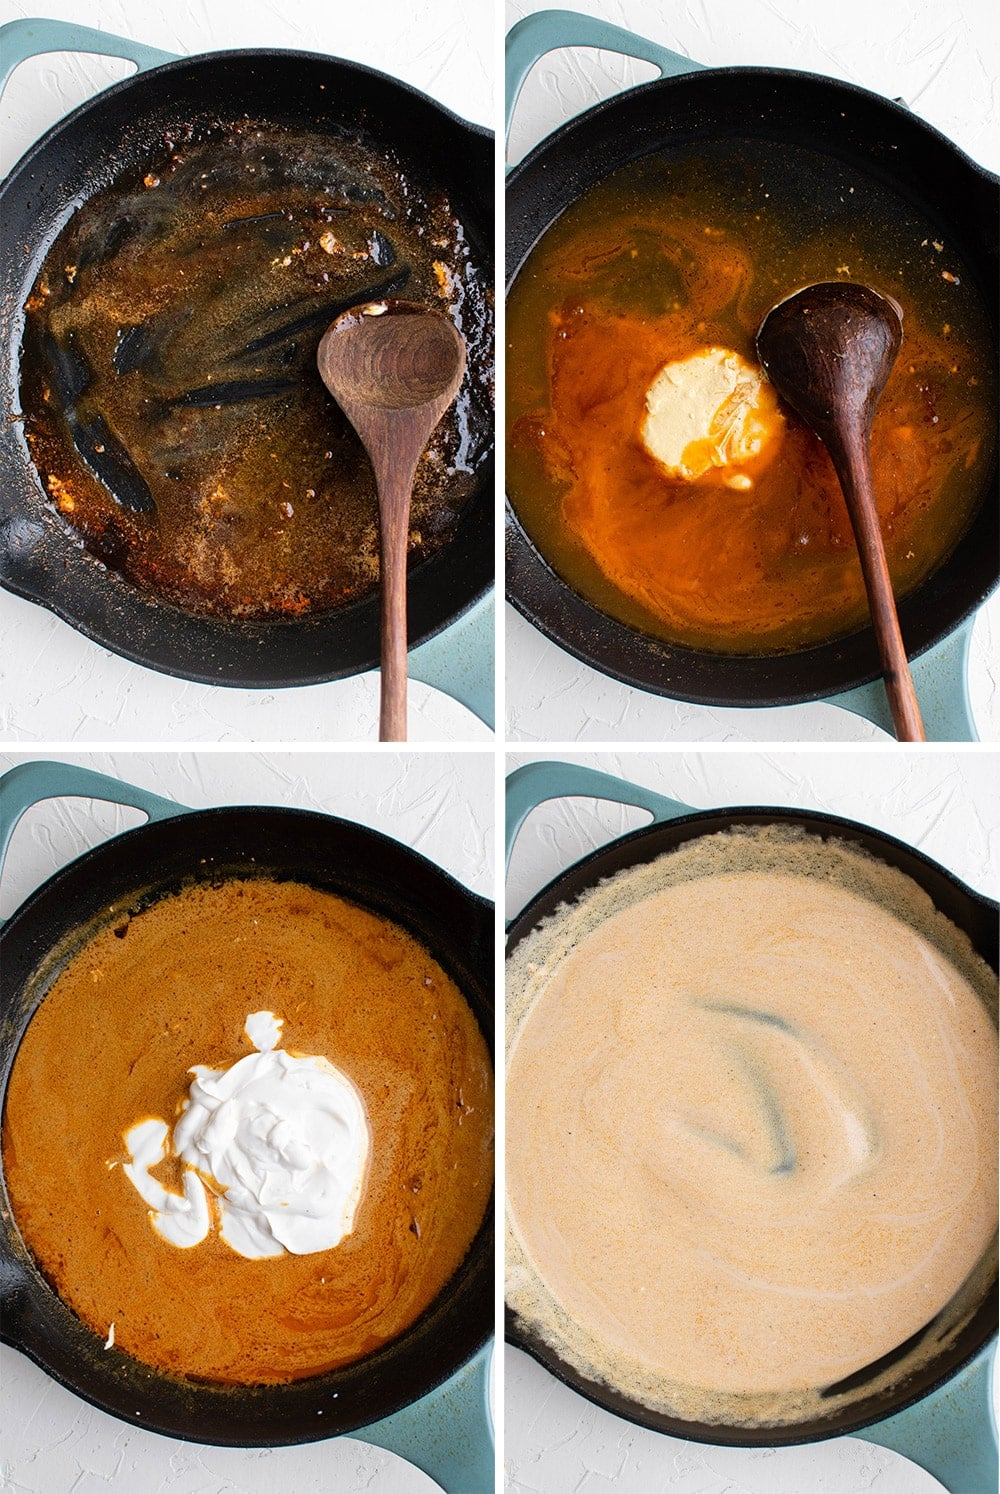 collage of images showing how to make sauce in a pan